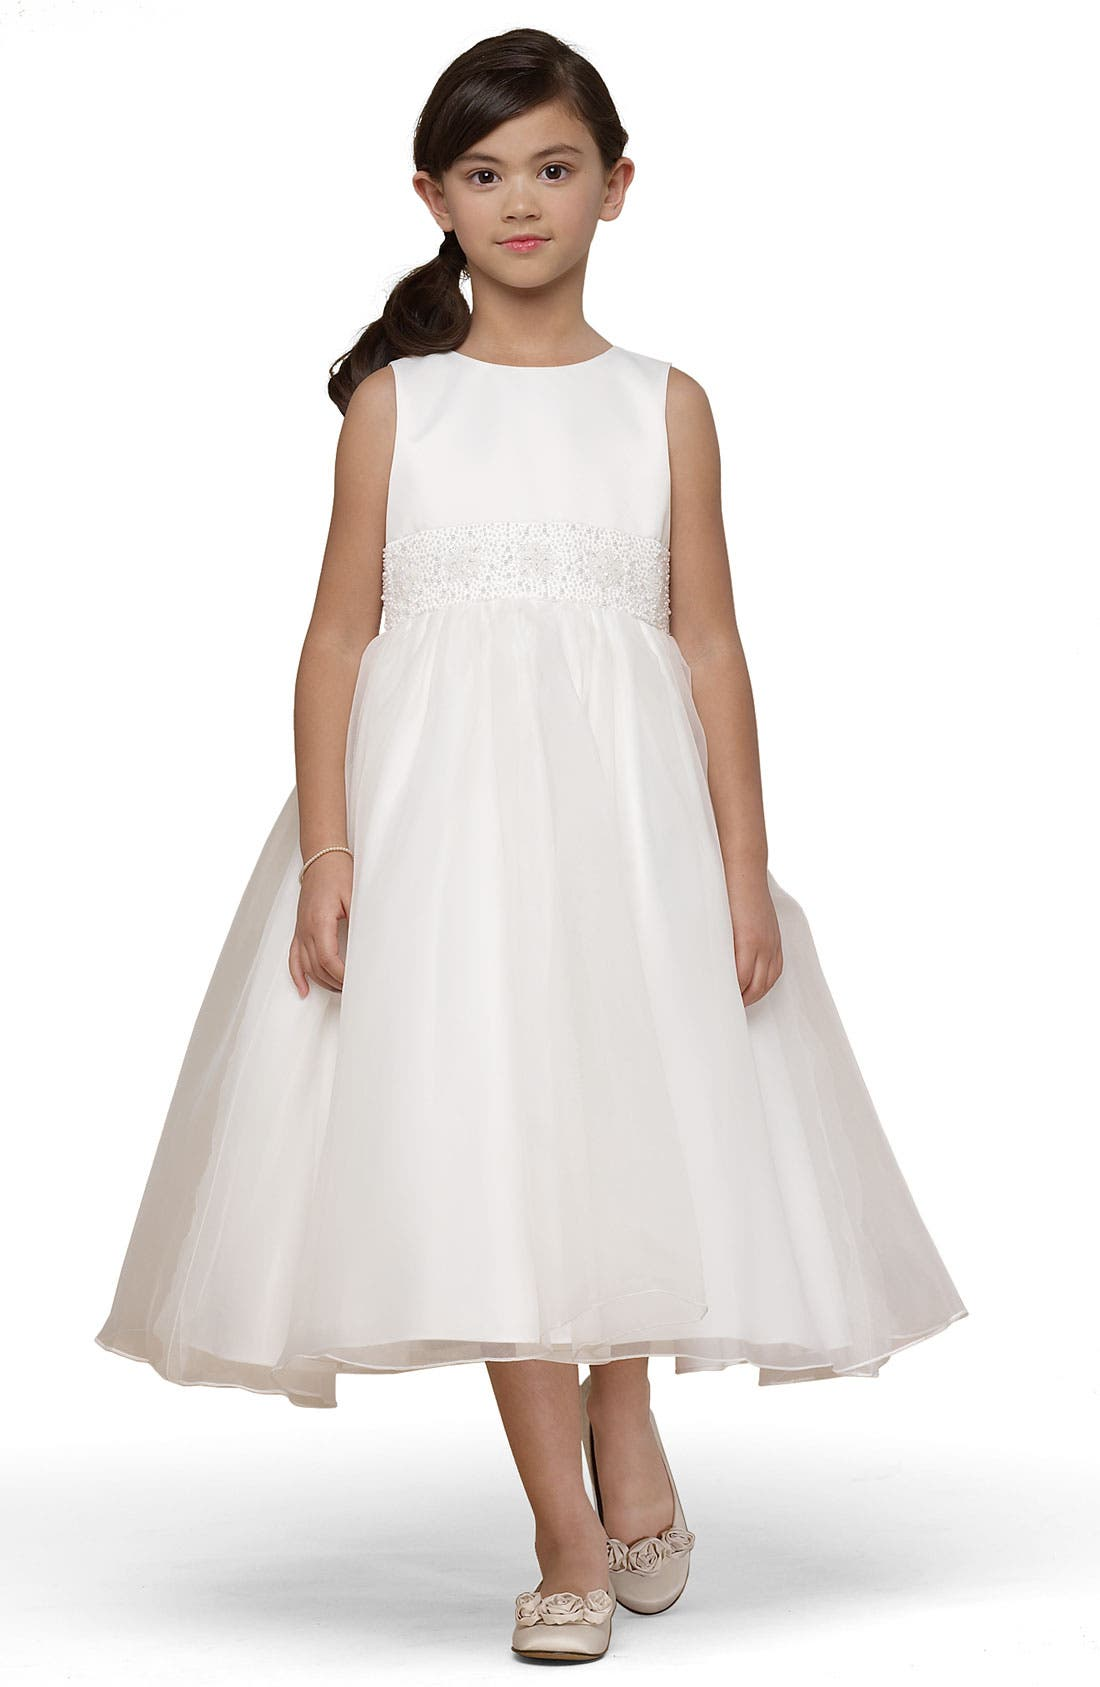 Us Angels Beaded Satin Sleeveless Dress (Toddler, Little Girls & Big Girls)